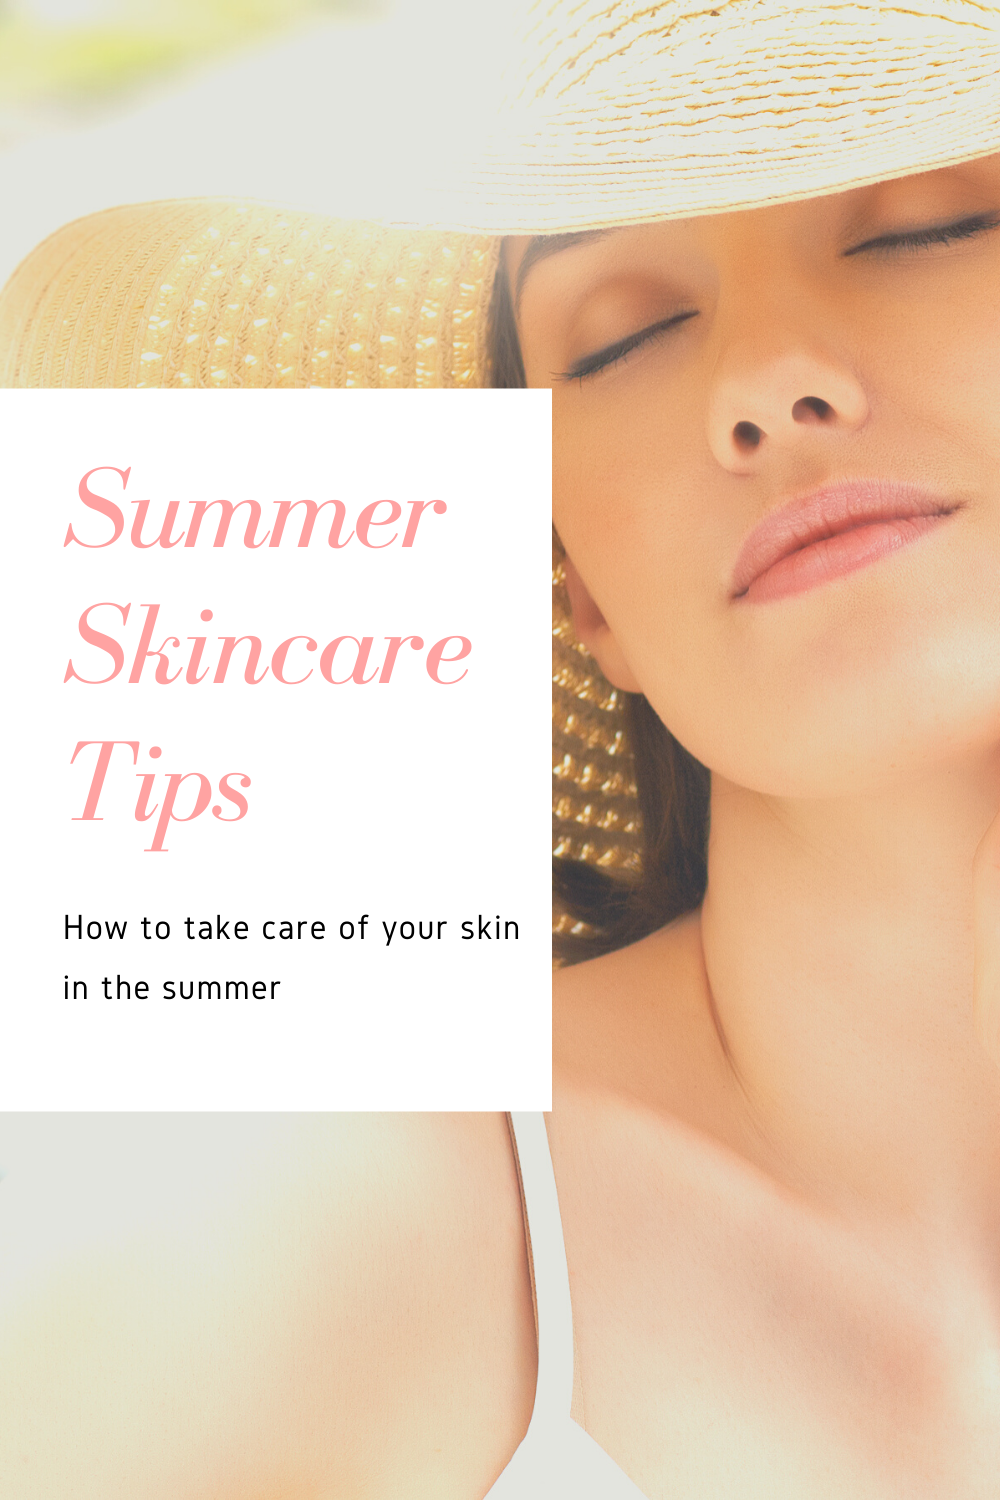 Check out my summer skincare tips and suggestions for products which will really improve your summer skincare routine!